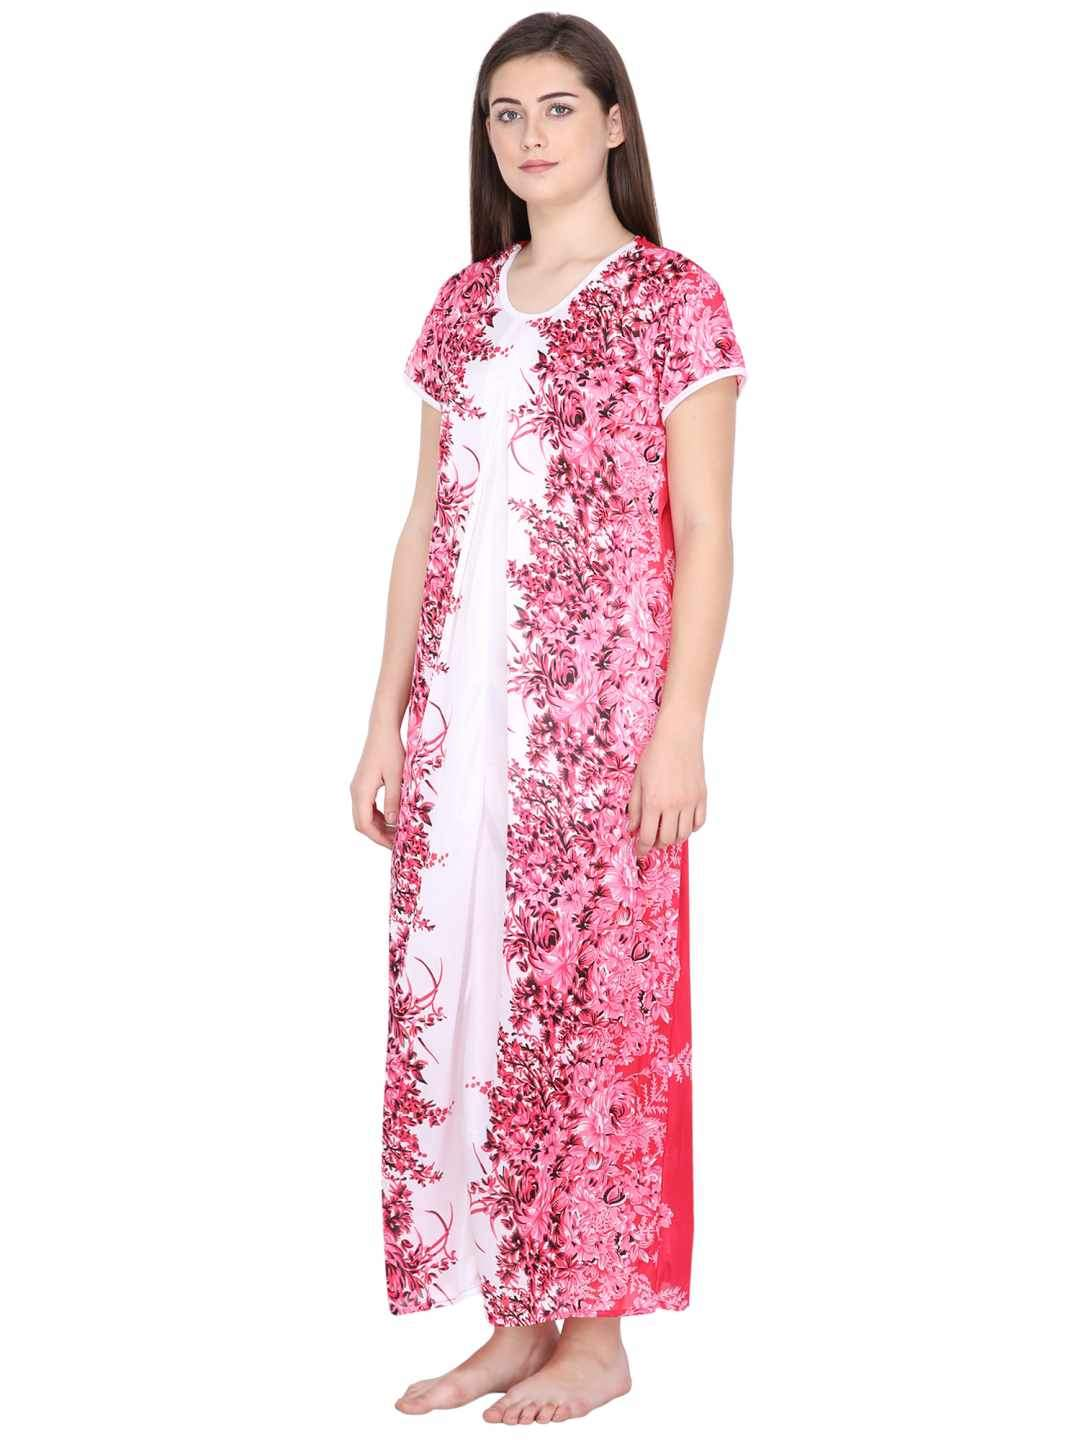 Klamotten Women's Printed Long Nightdress 284C188